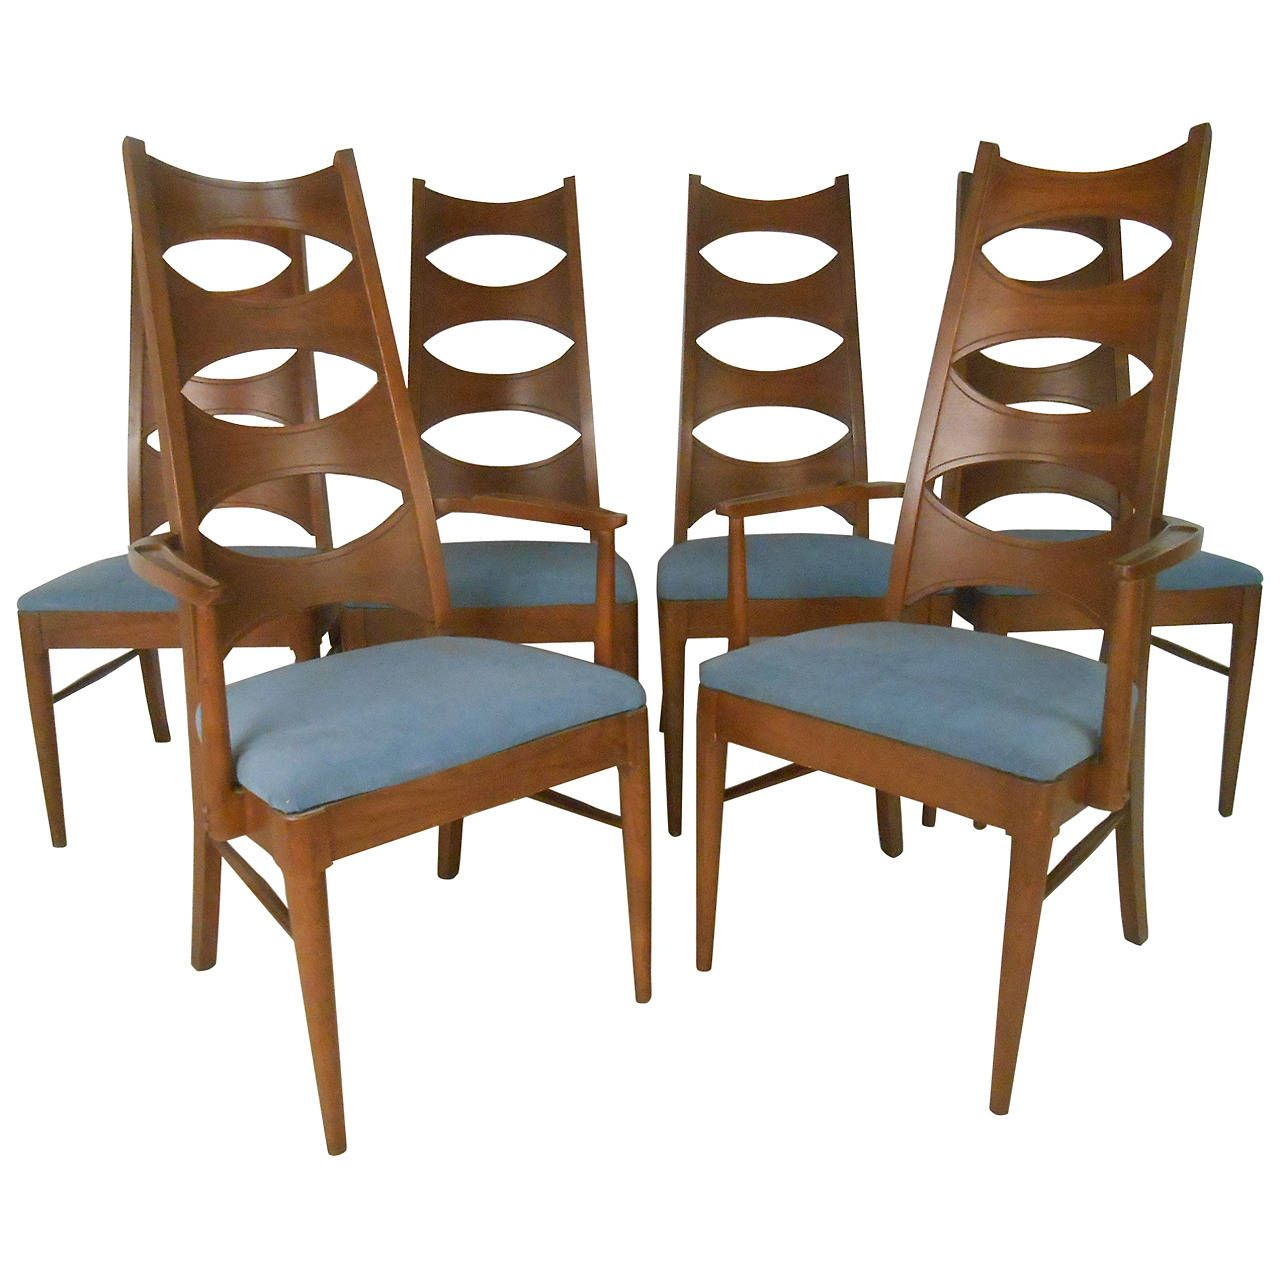 Set Of Midcentury Modern Dining Chairs  Dining Chairs Mid Mesmerizing Dining Room Chairs Mid Century Modern Inspiration